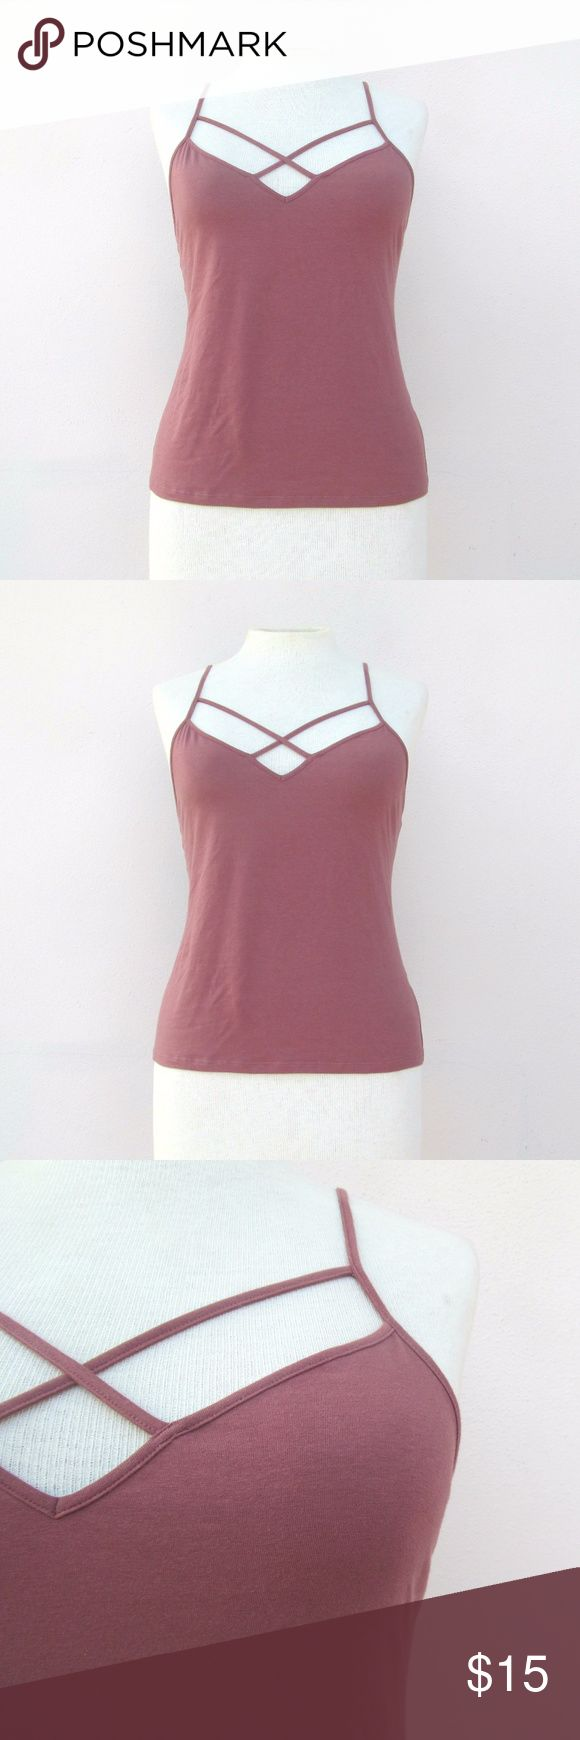 Charlotte Russe Plus Size Strappy Top Size 2X Trendy plus size top Charlotte Russe Tops